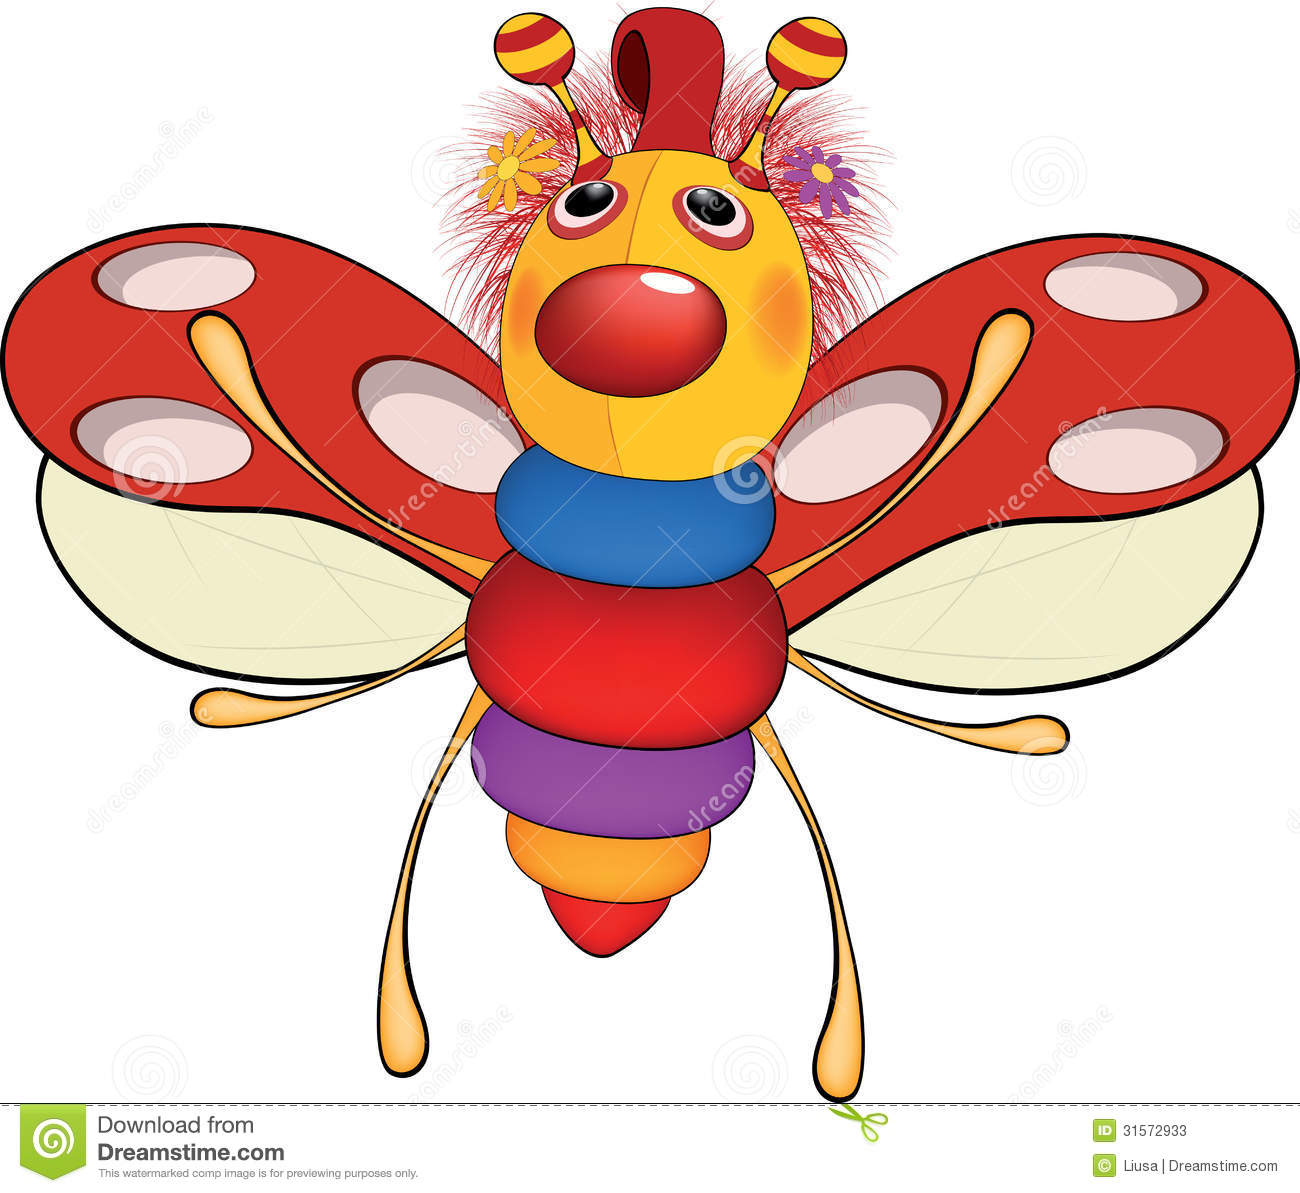 Soft Toys Cartoon : Soft toy a ladybird cartoon stock photos image